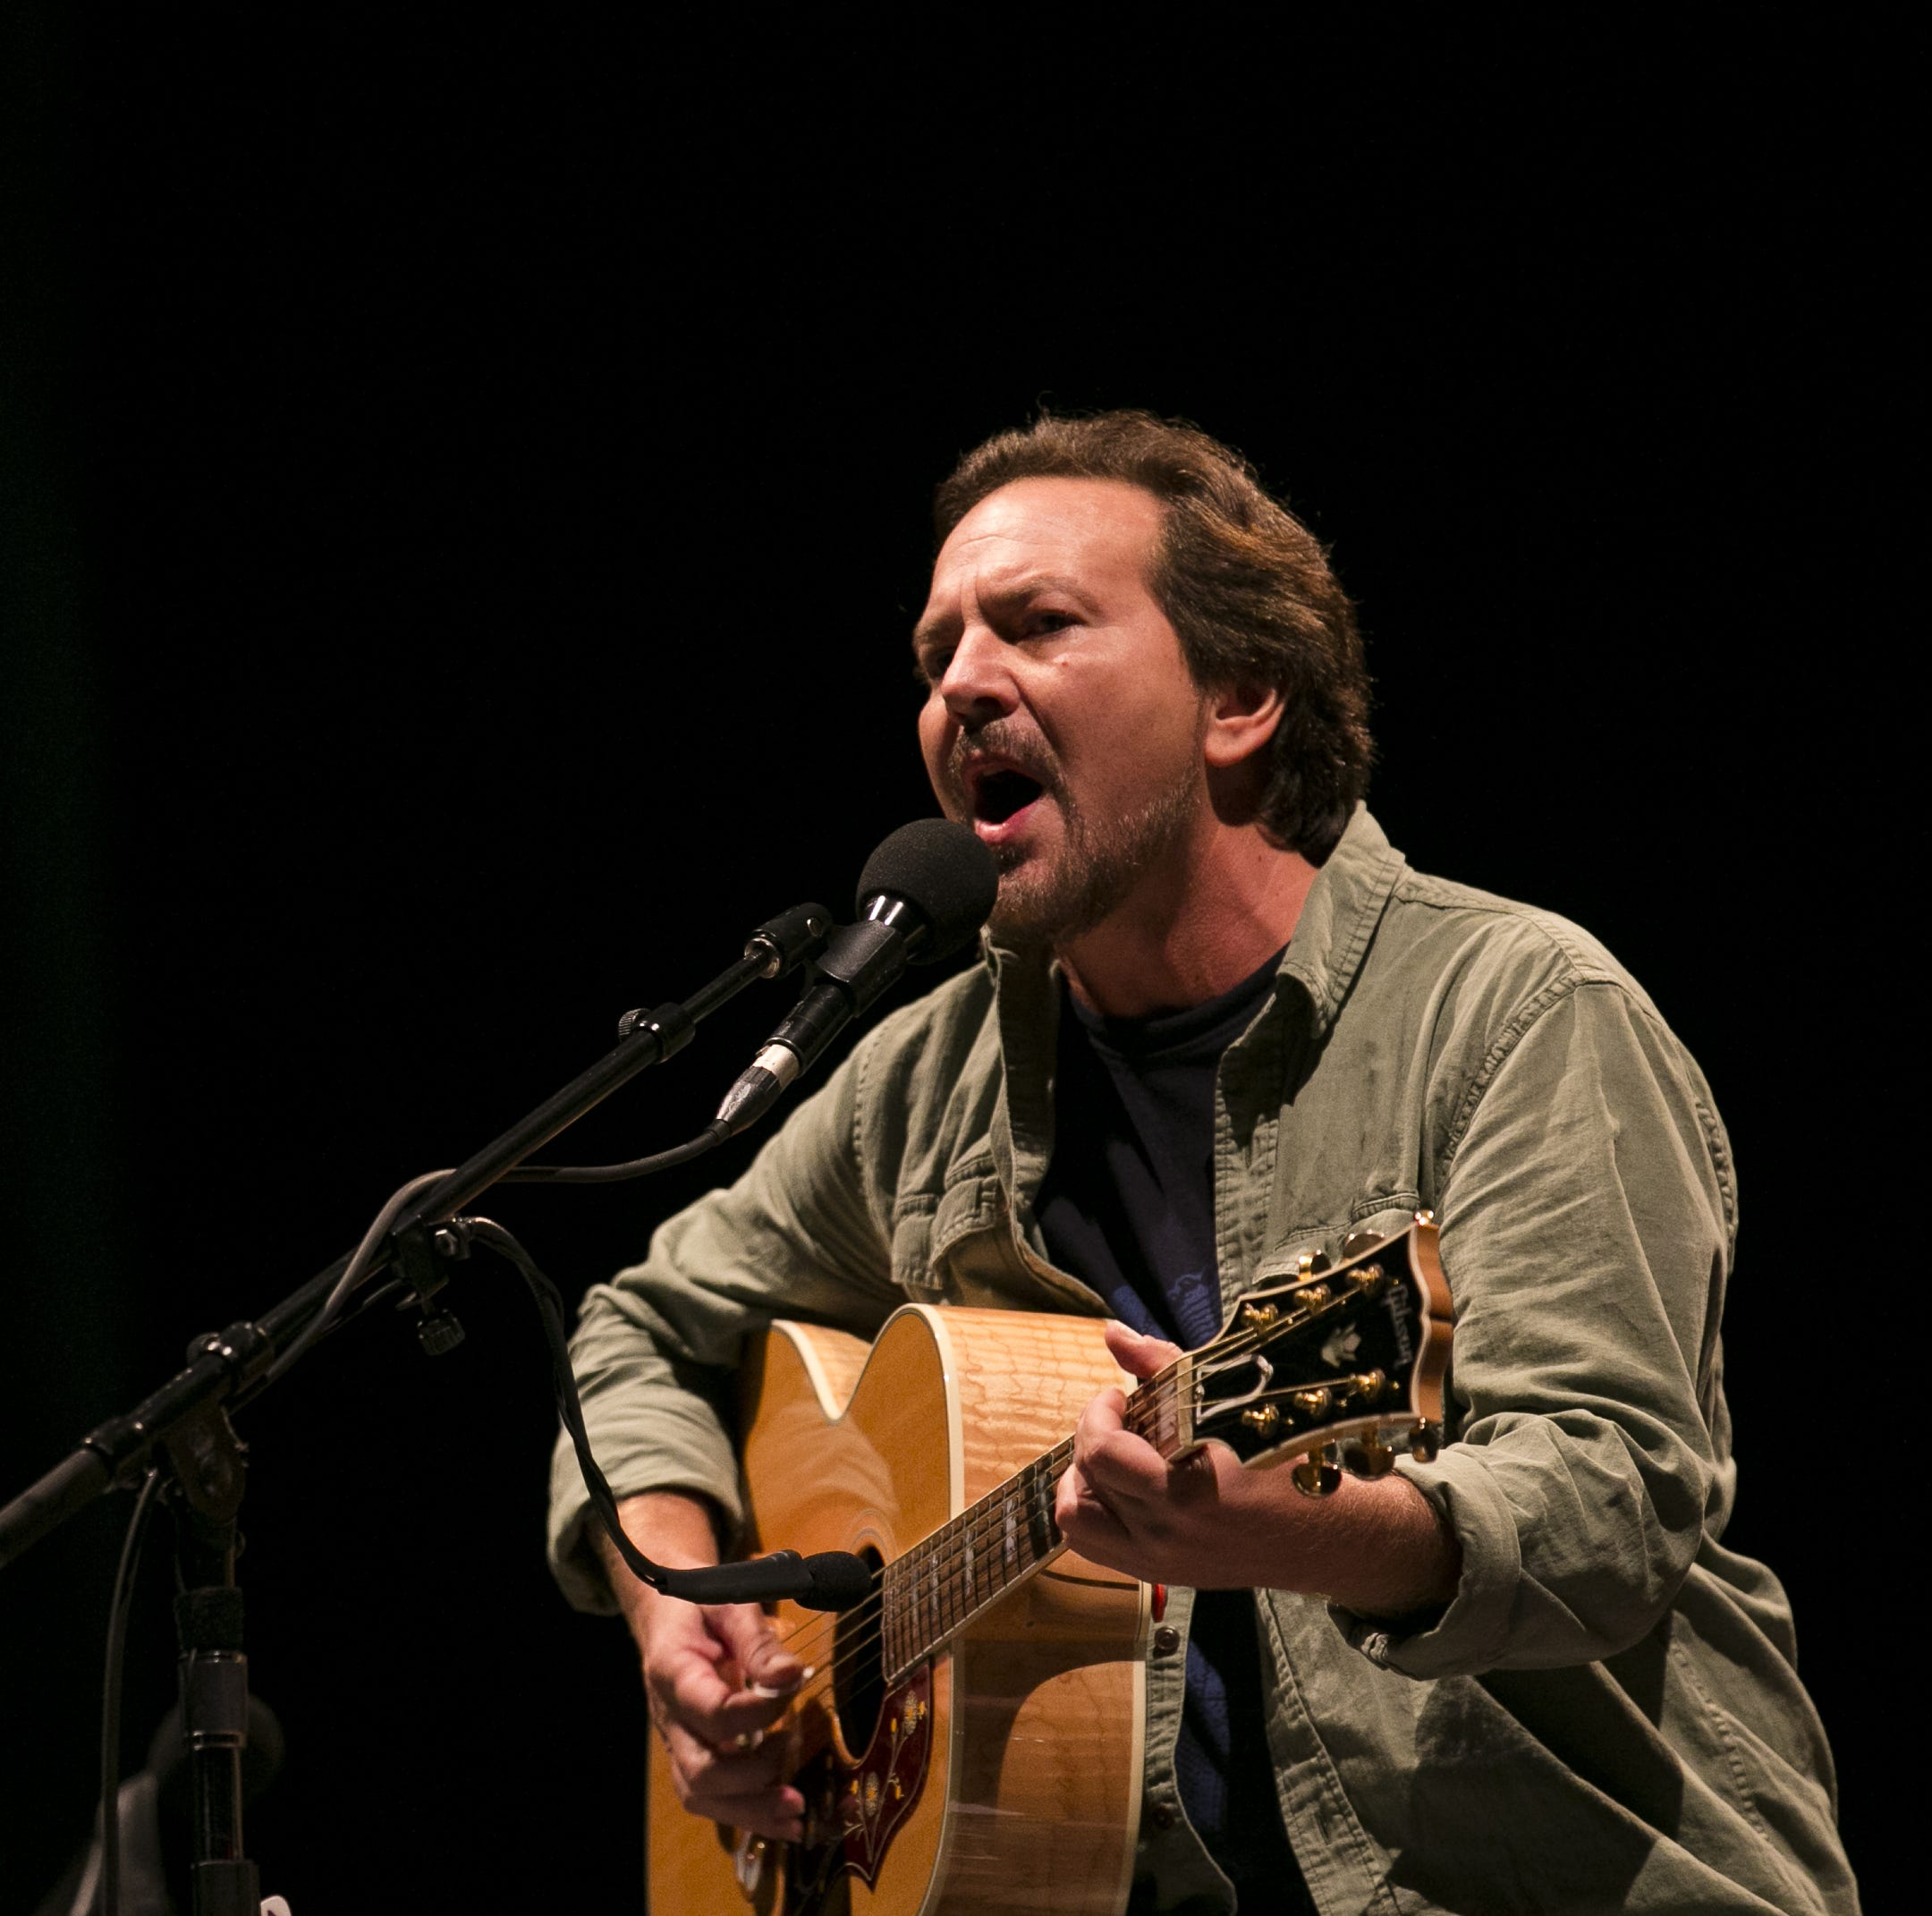 Eddie Vedder brings 'A Star is Born' to Innings Festival in Tempe